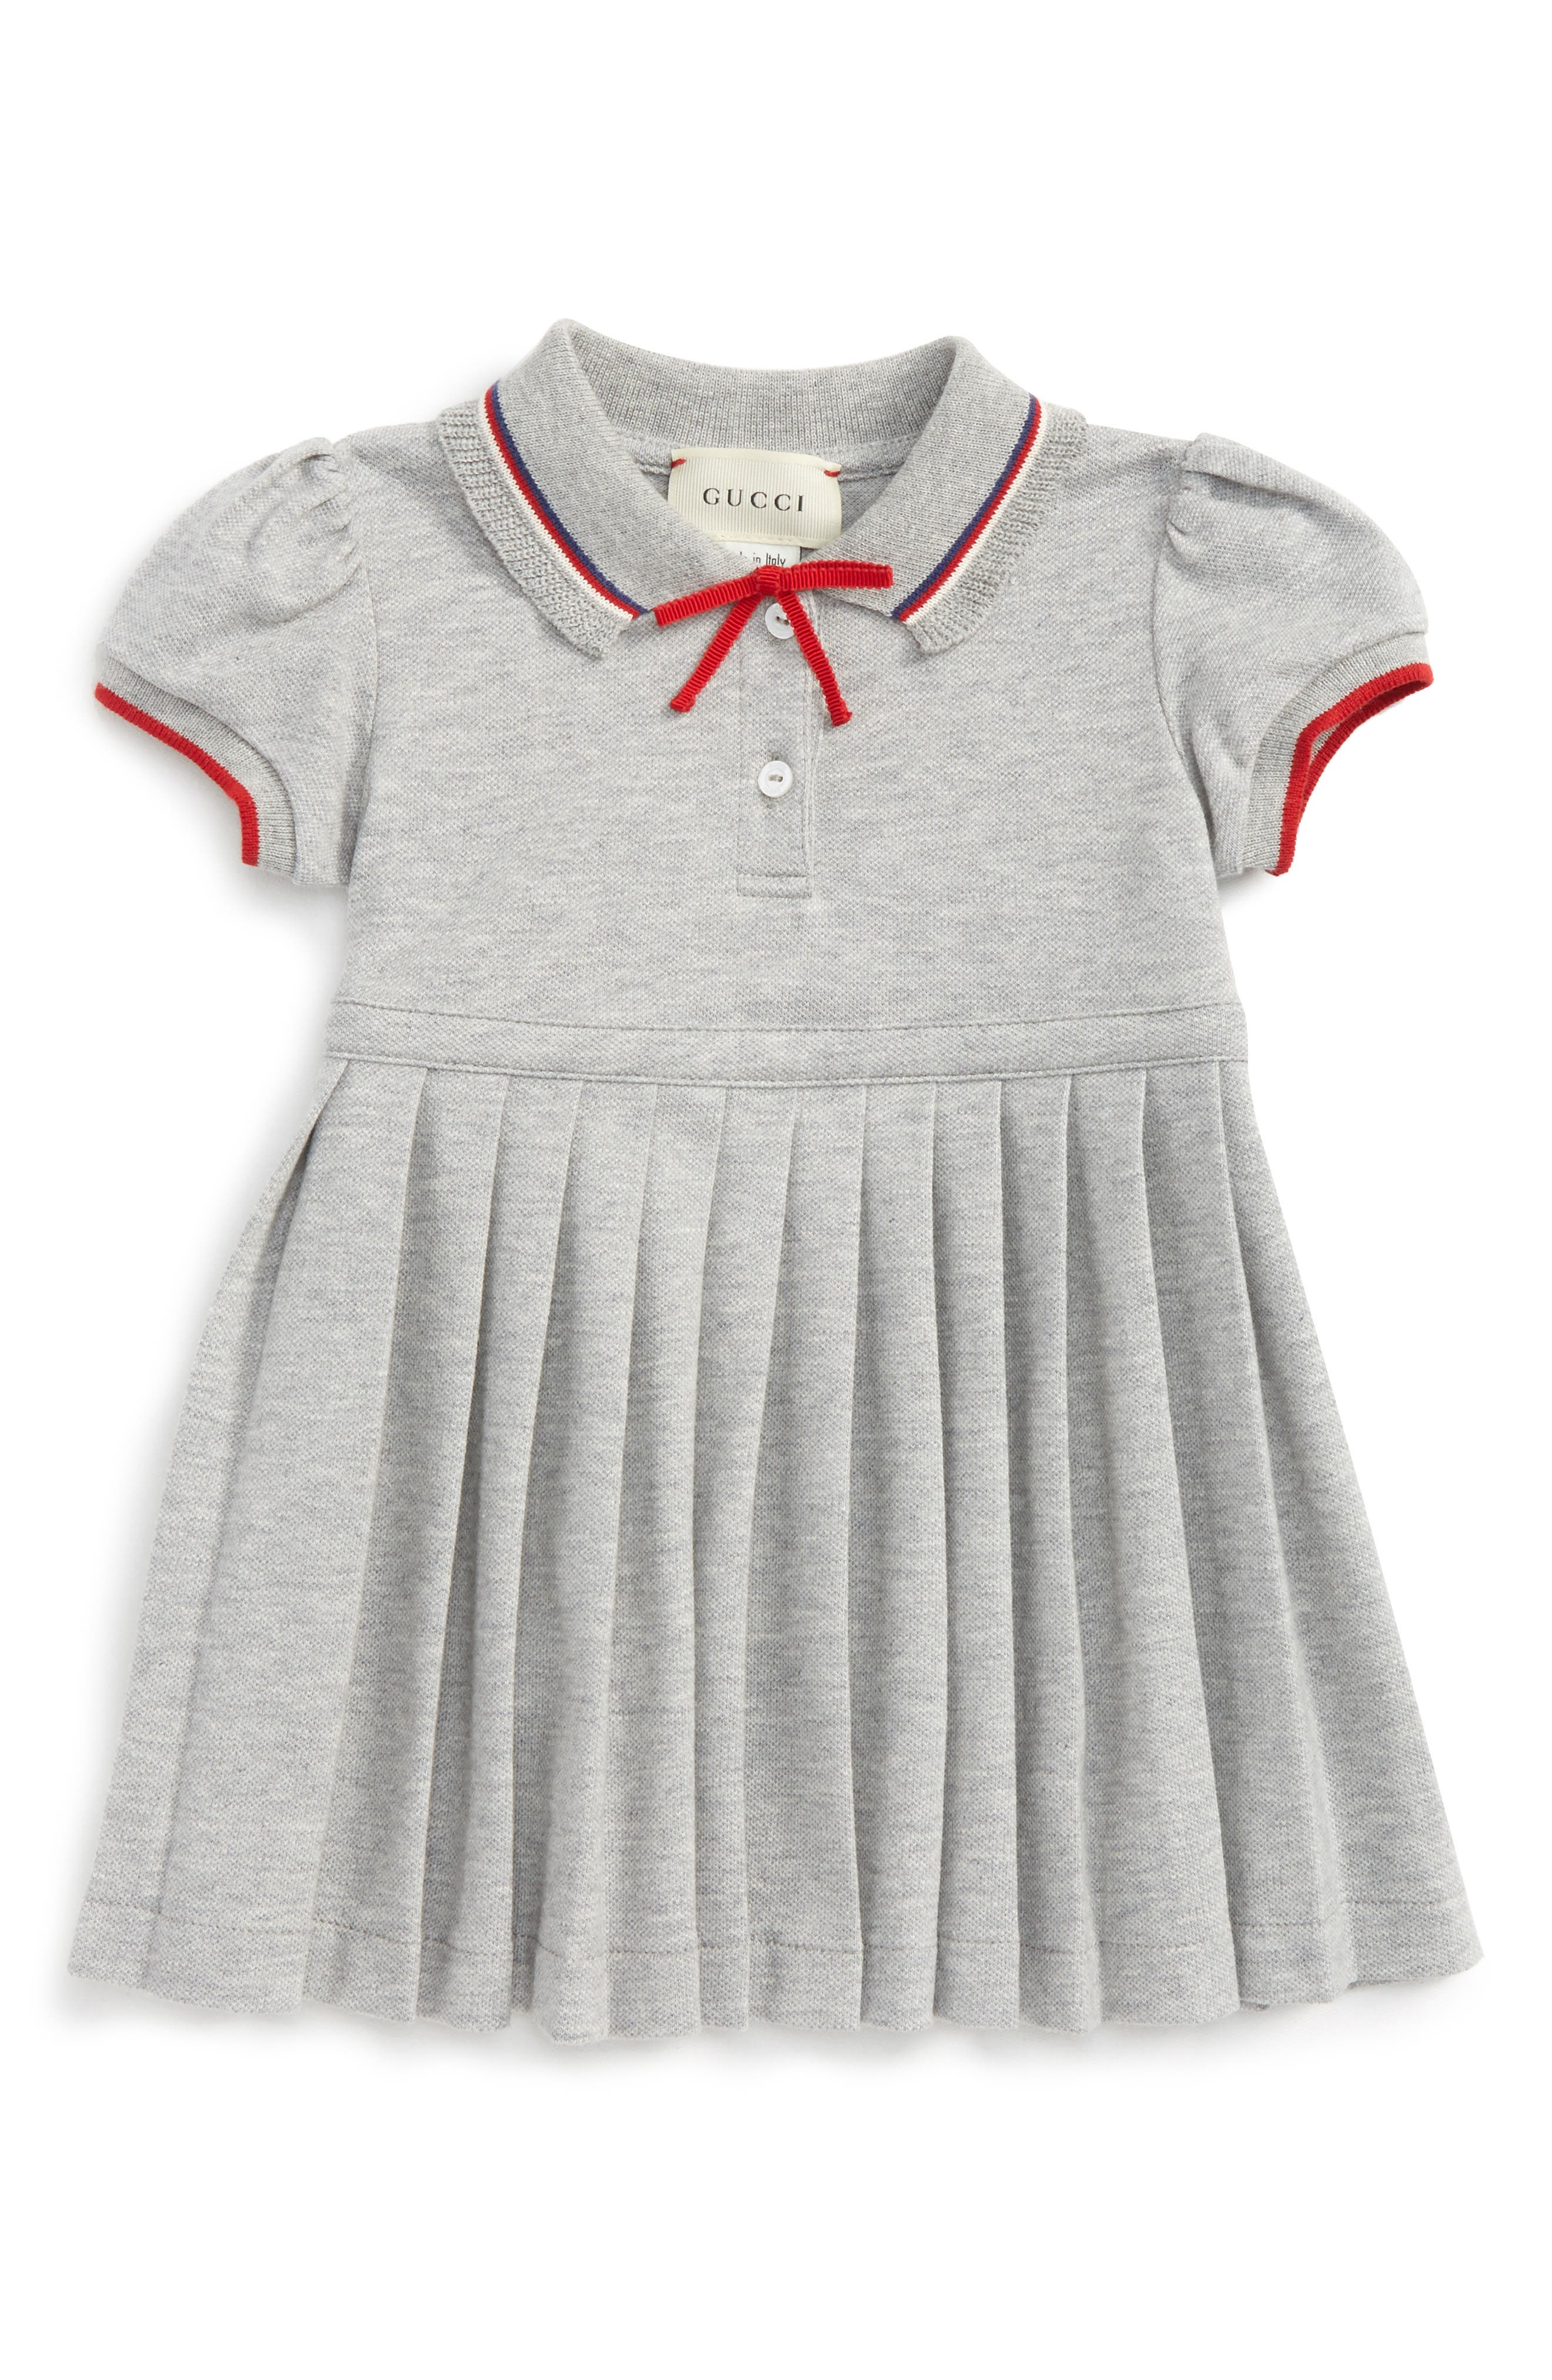 Bow Trimmed Dress,                             Main thumbnail 1, color,                             Grey Multi